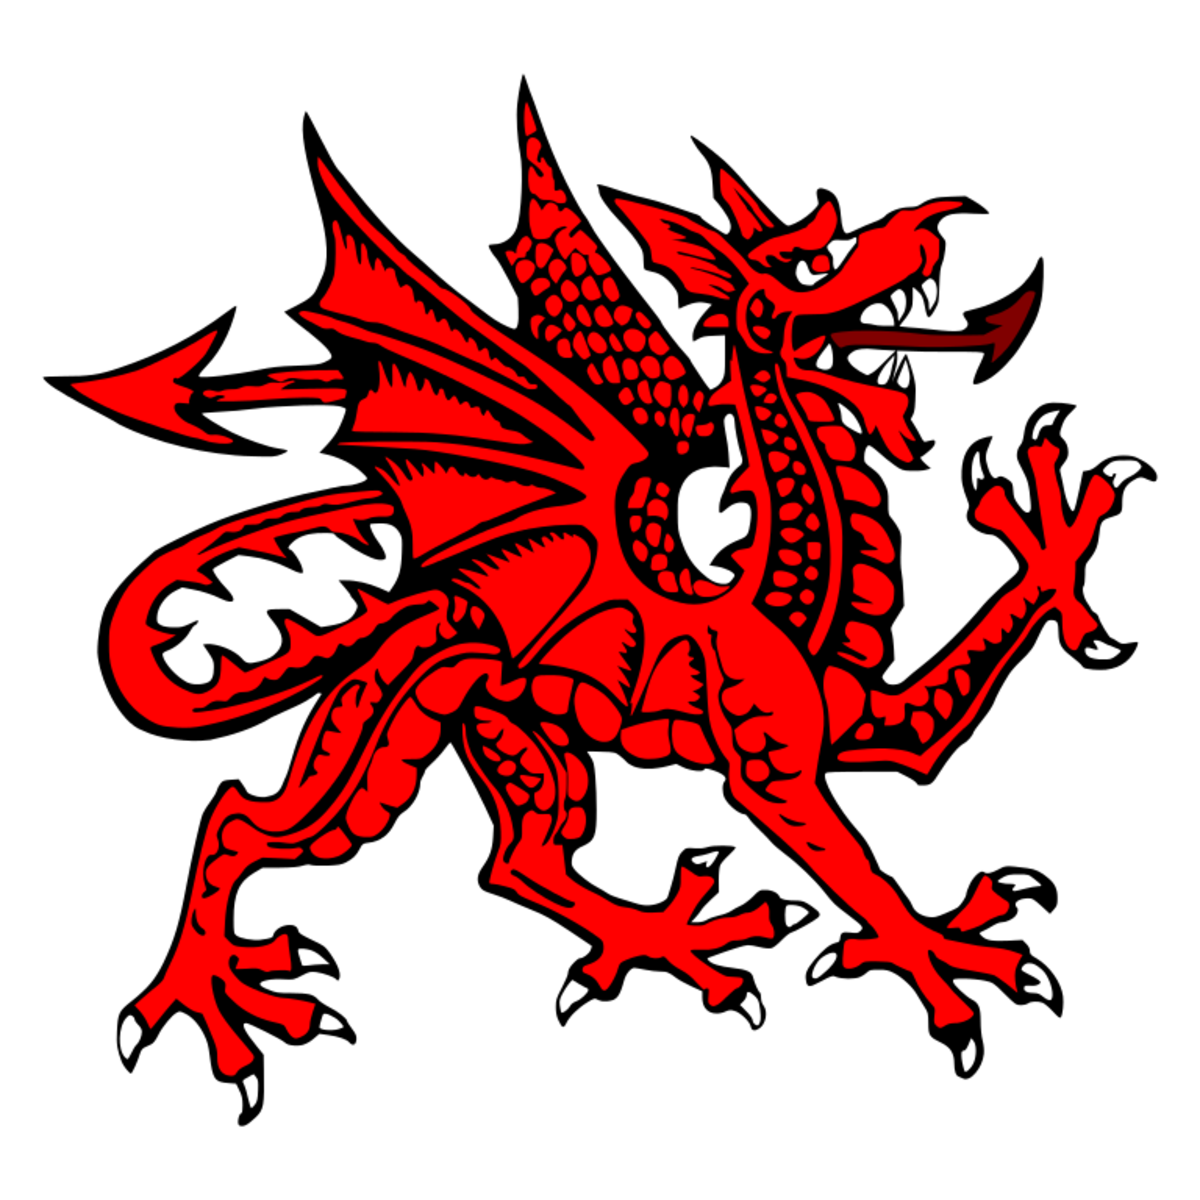 The Prophecy of Merlin which features the enduring legend of the Red Dragon is centred on Dinas Emrys in Northwest Wales.